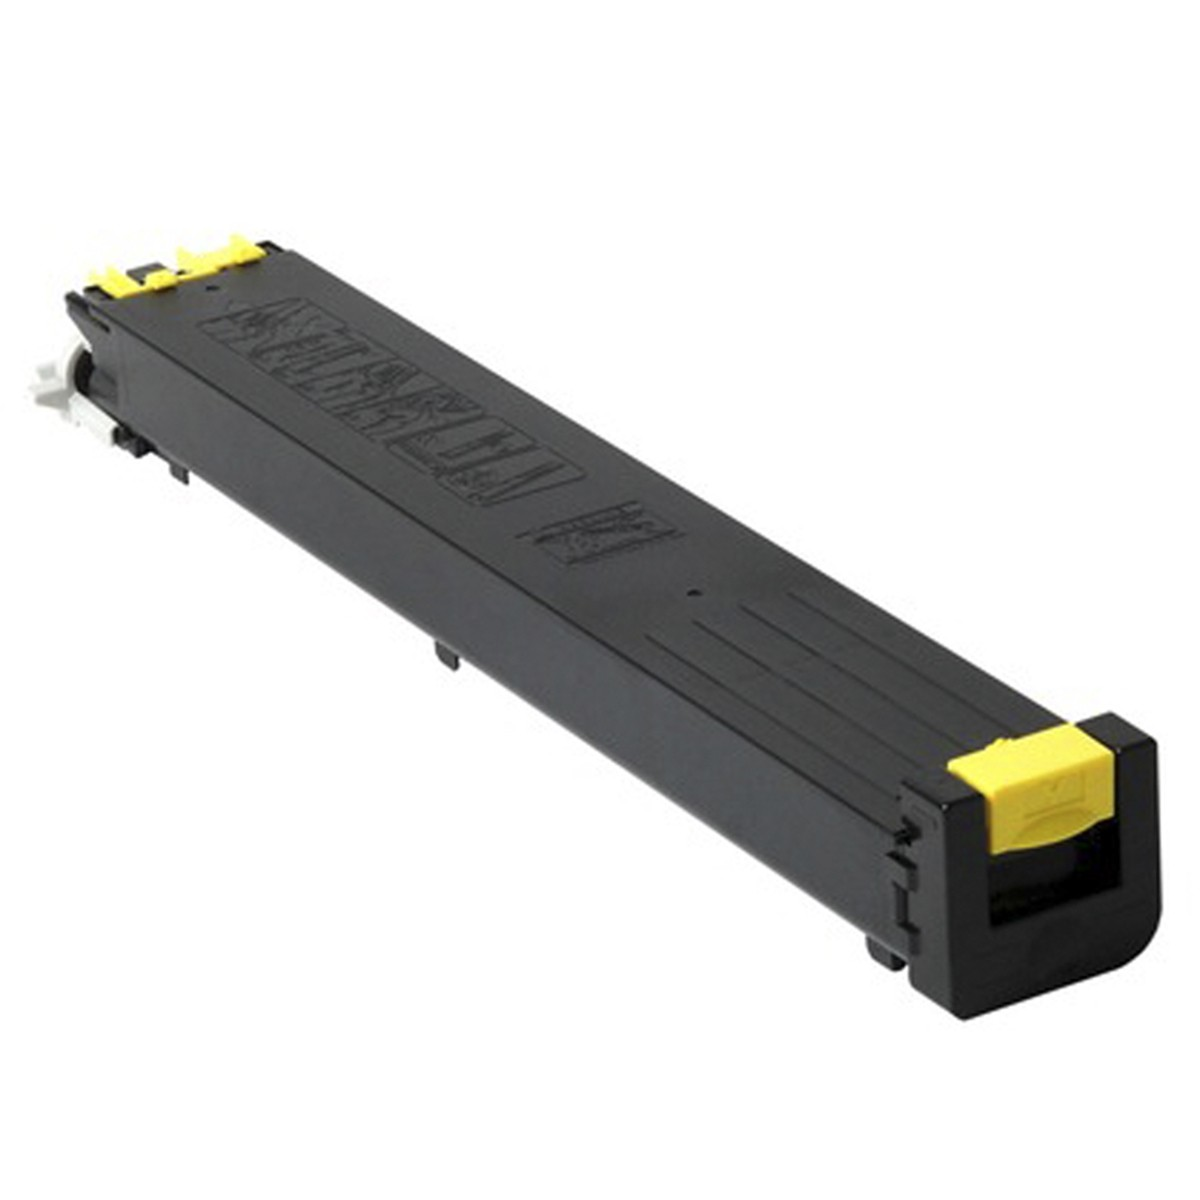 MX51BTYA  / MX51NTYA - CARTUCHO DE TONER AMARELO ORIGINAL DO FABRICANTE PARA SHARP MX4111N, MX5111N